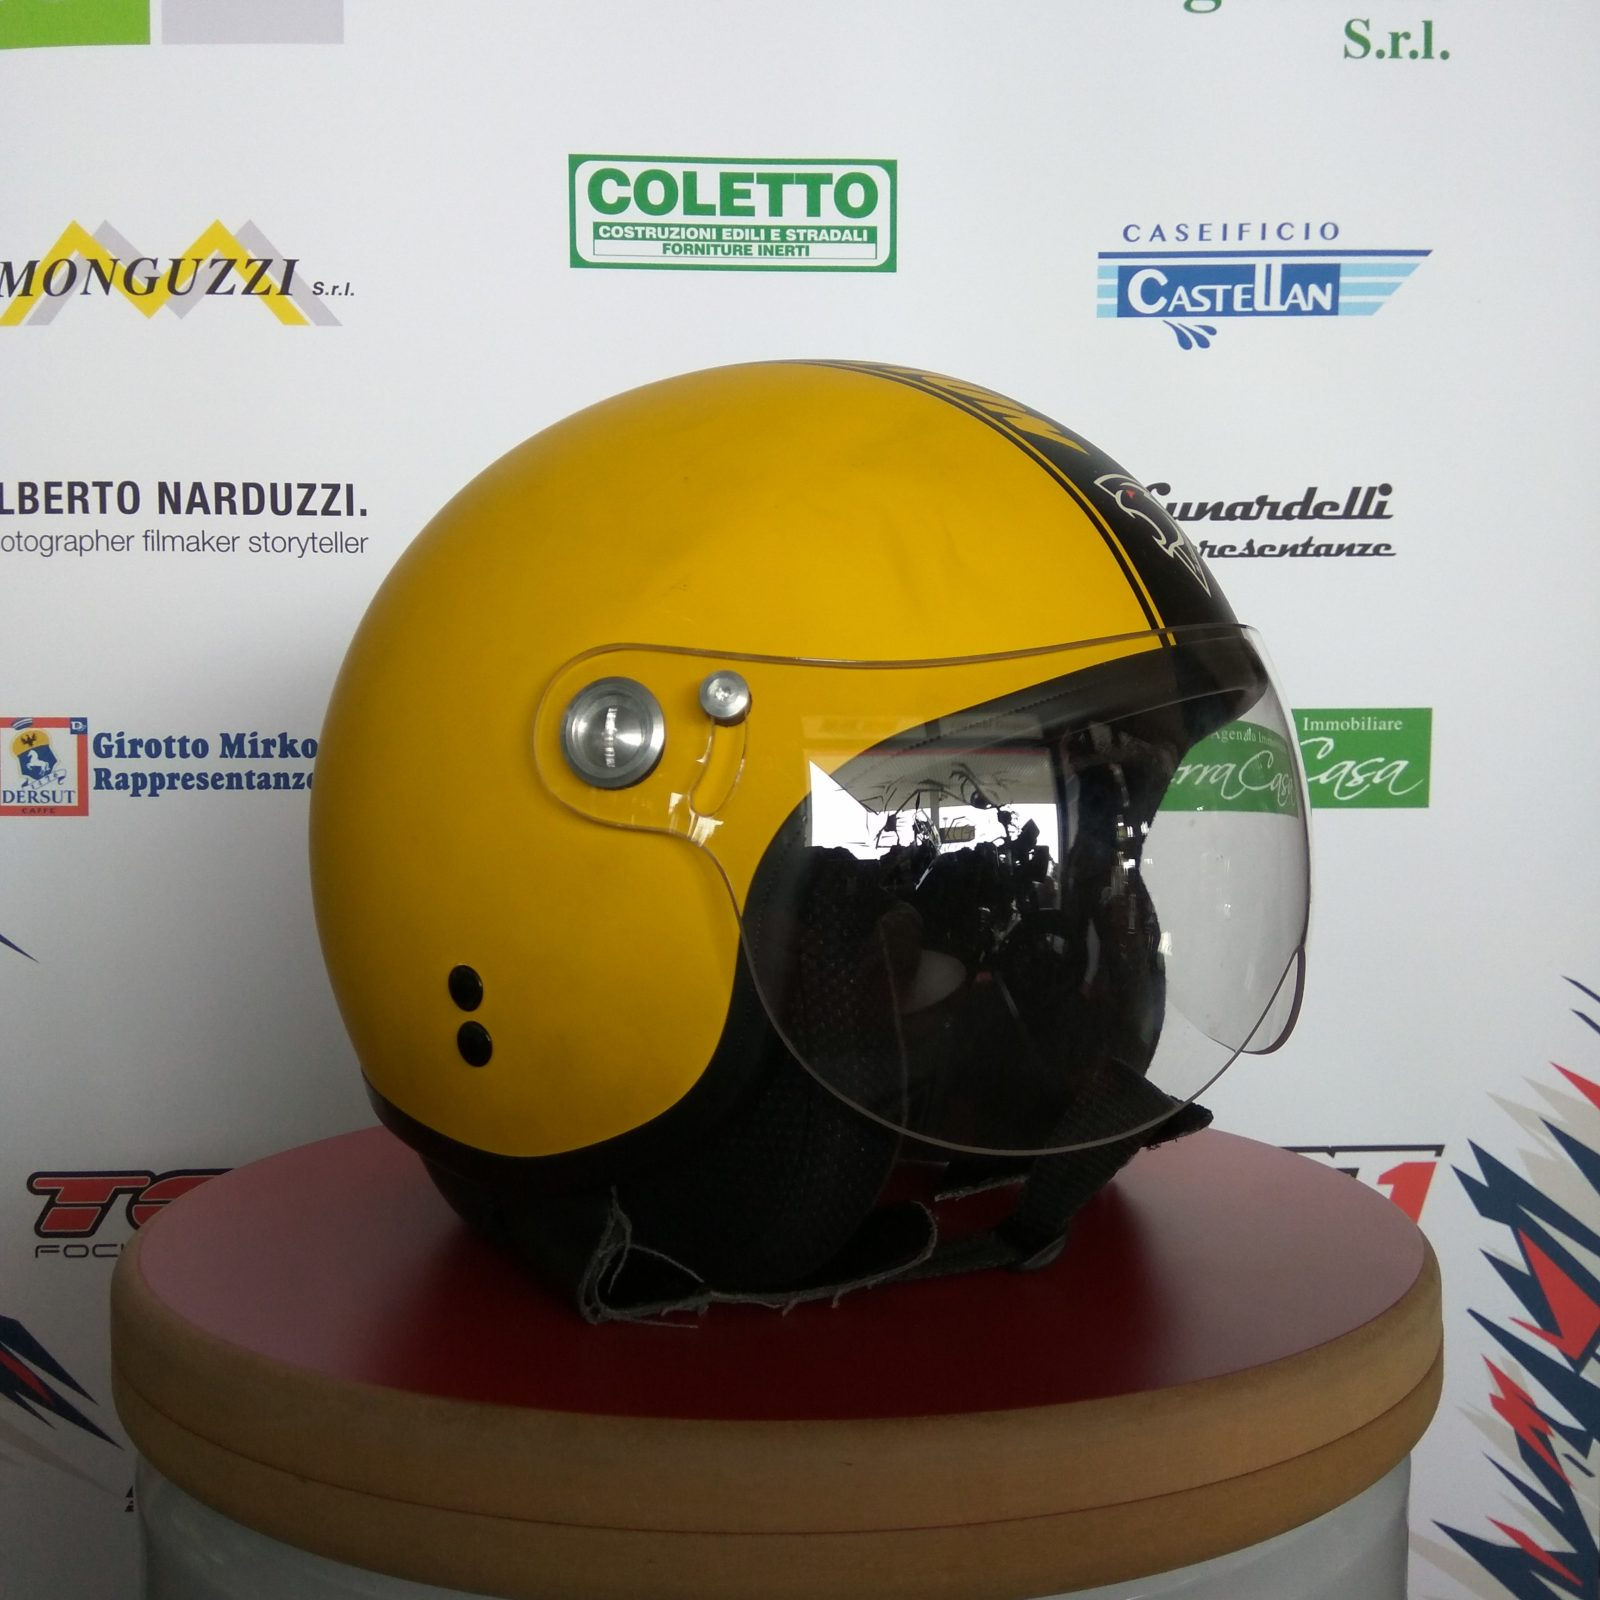 CASCO JET scooter